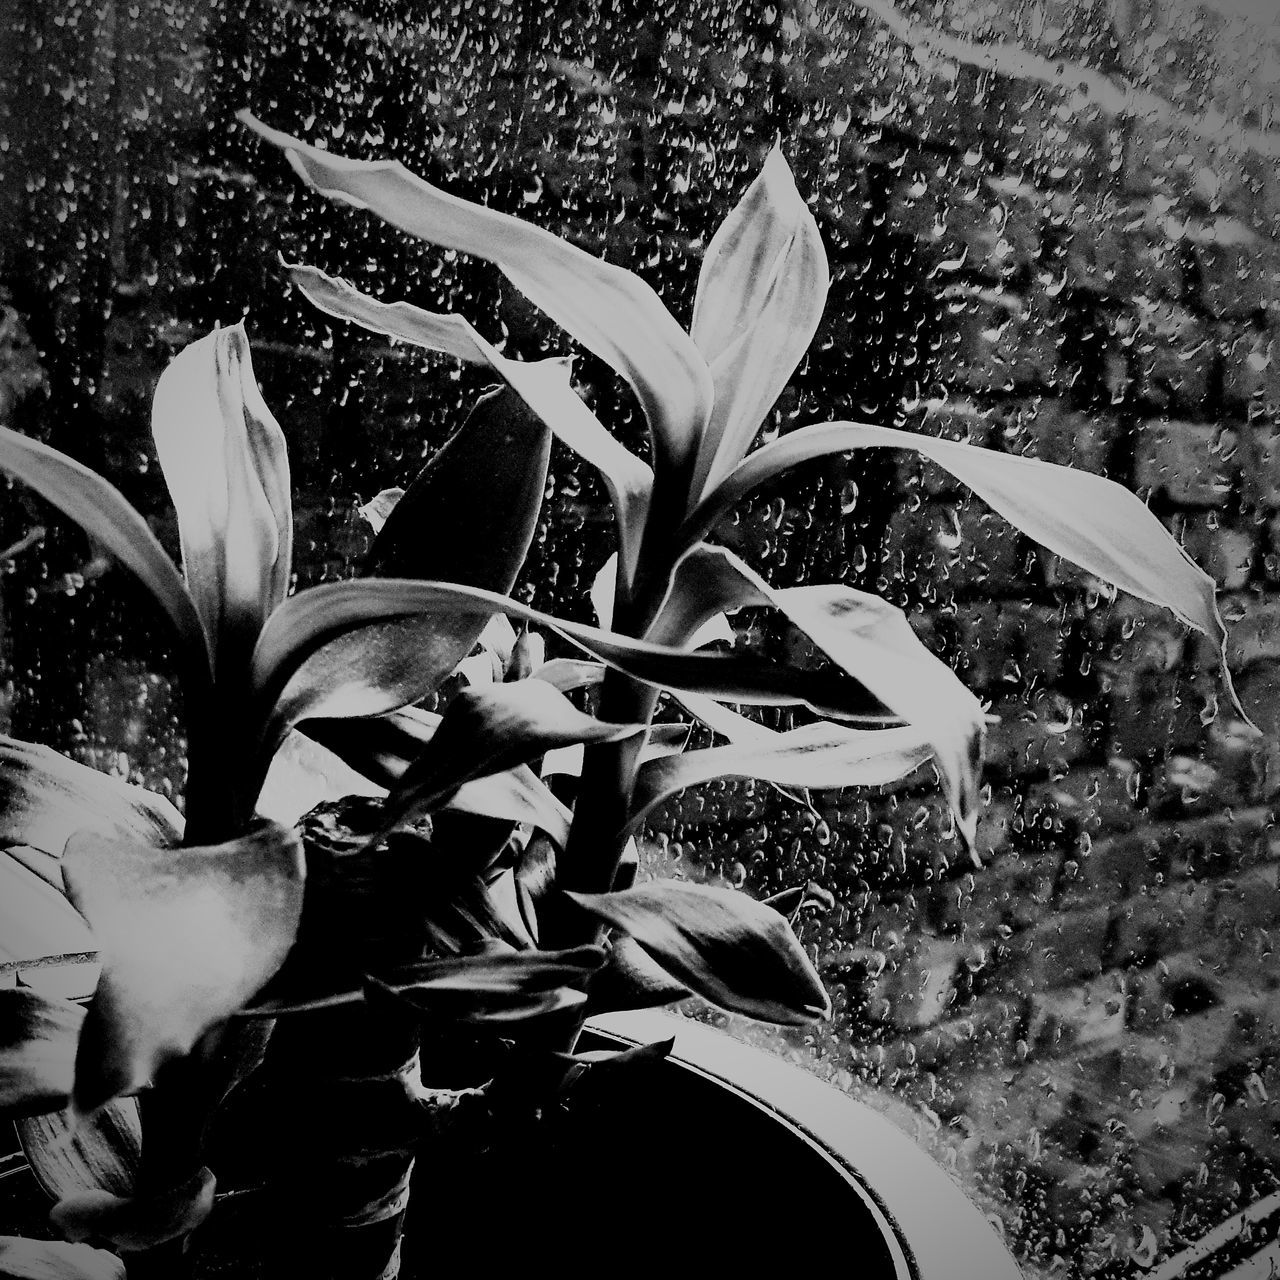 Throughthewindow Raindrops Littleplant Blackandwhitemood Rainymood Beauty In Nature Black And White Photography ...